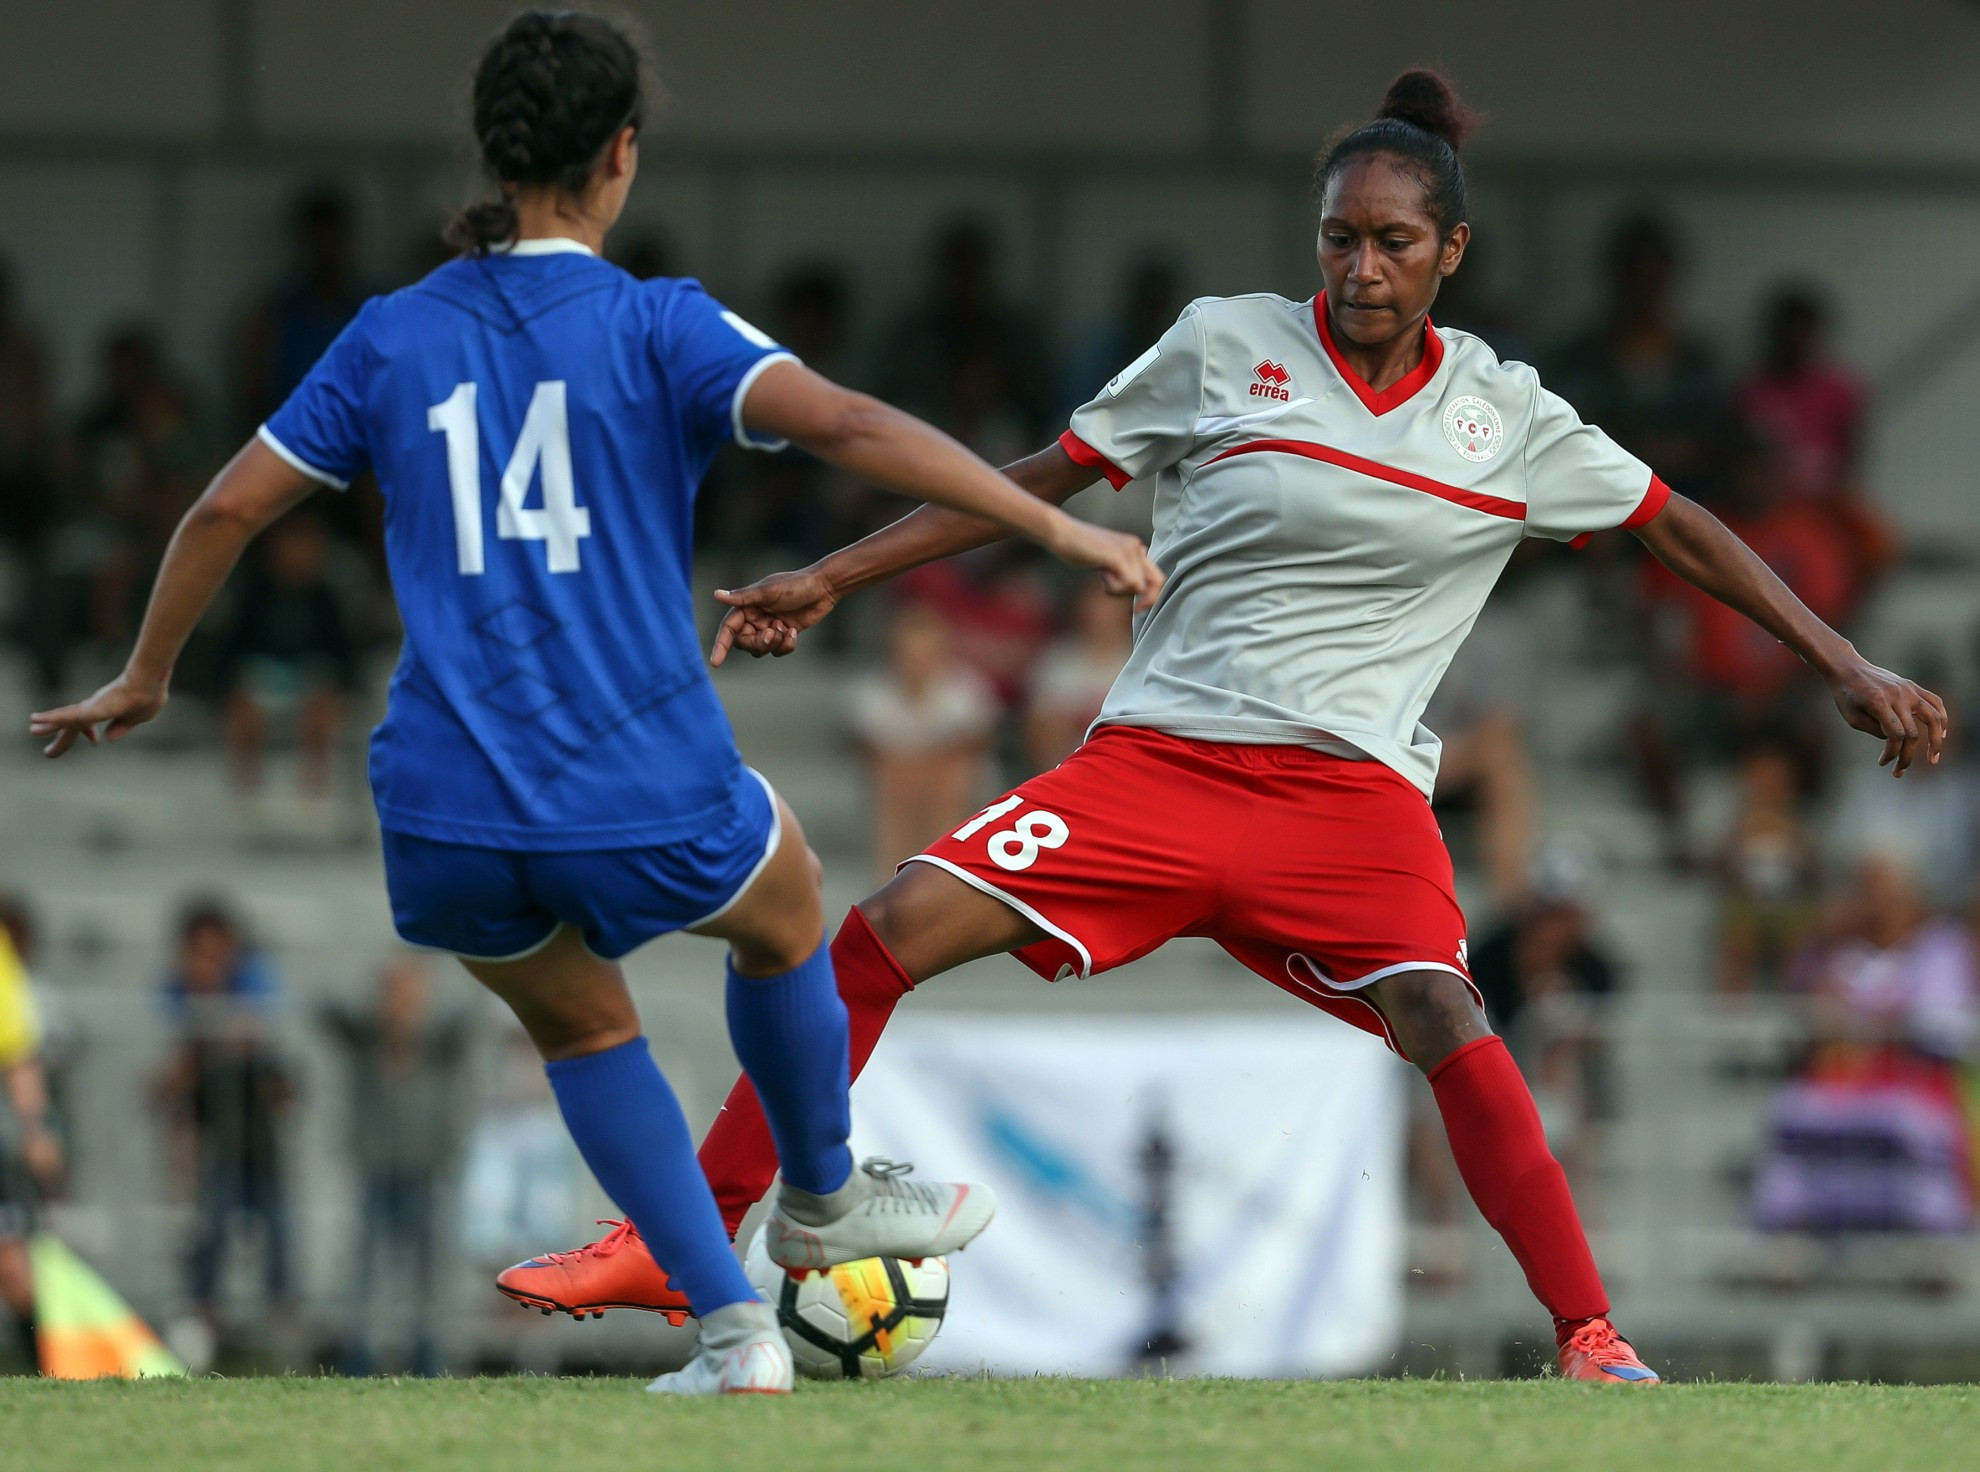 New Caledonia have made it into the sem-finals of the Oceania Football Confederation Women's Nations Cup ©OFC